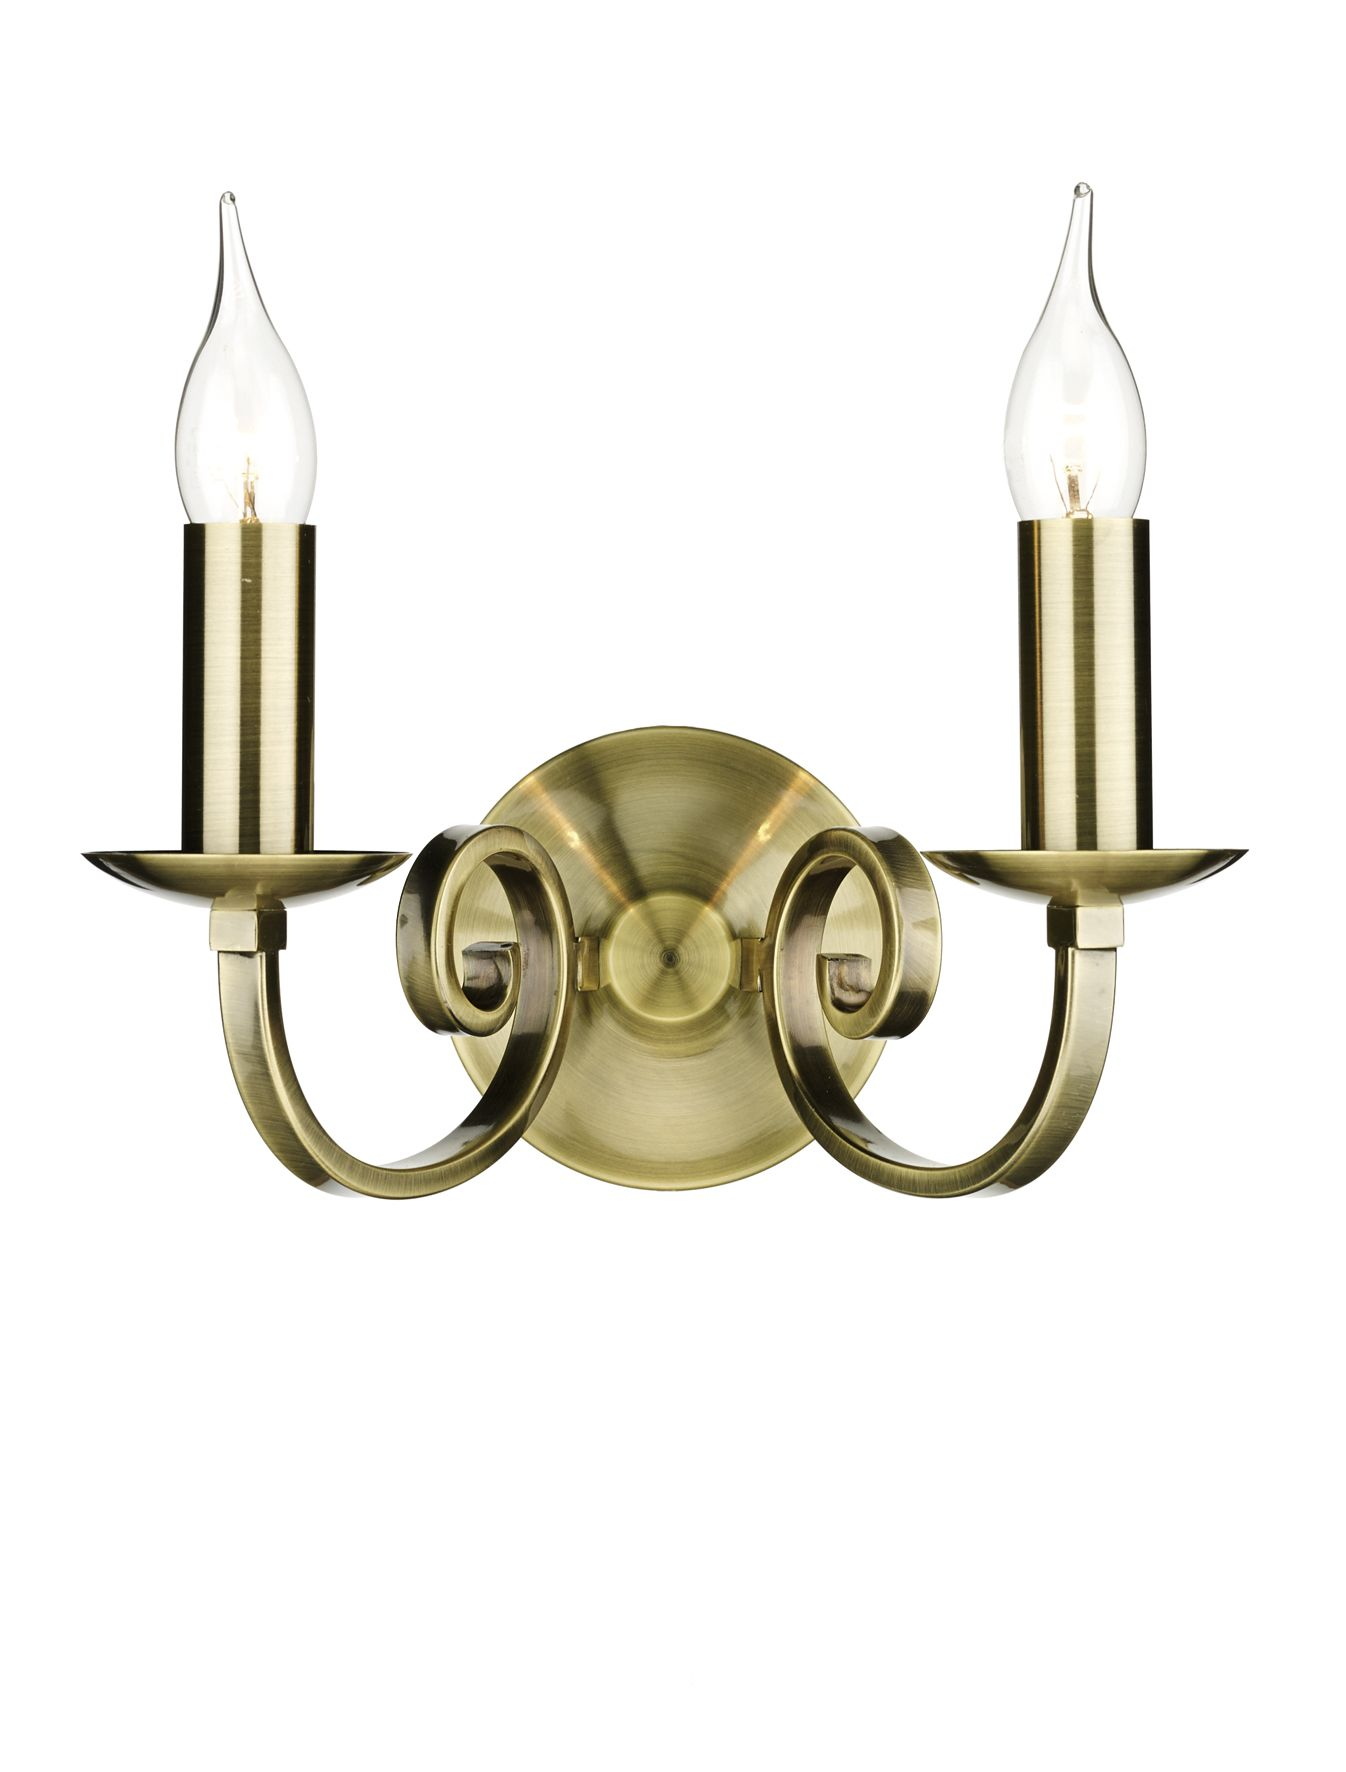 Double Insulated Class 2 Wall Lights : Murray Double Wall Bracket Antique Brass Class 2 Double Insulated BXMUR0975-17